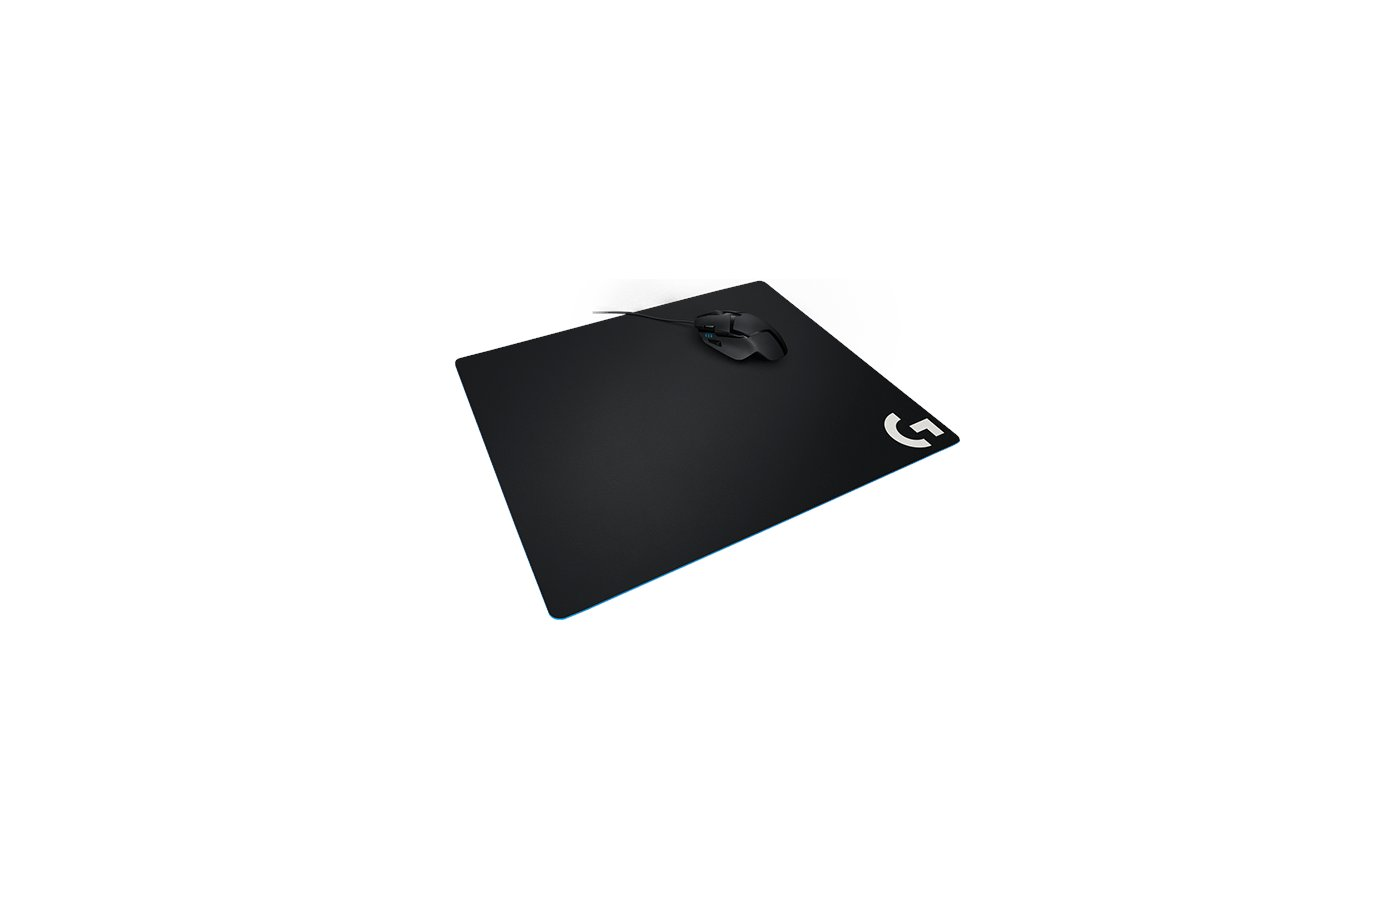 Коврик для мыши Logitech G640 Gloth Gaming Mouse Pad (943-000089)